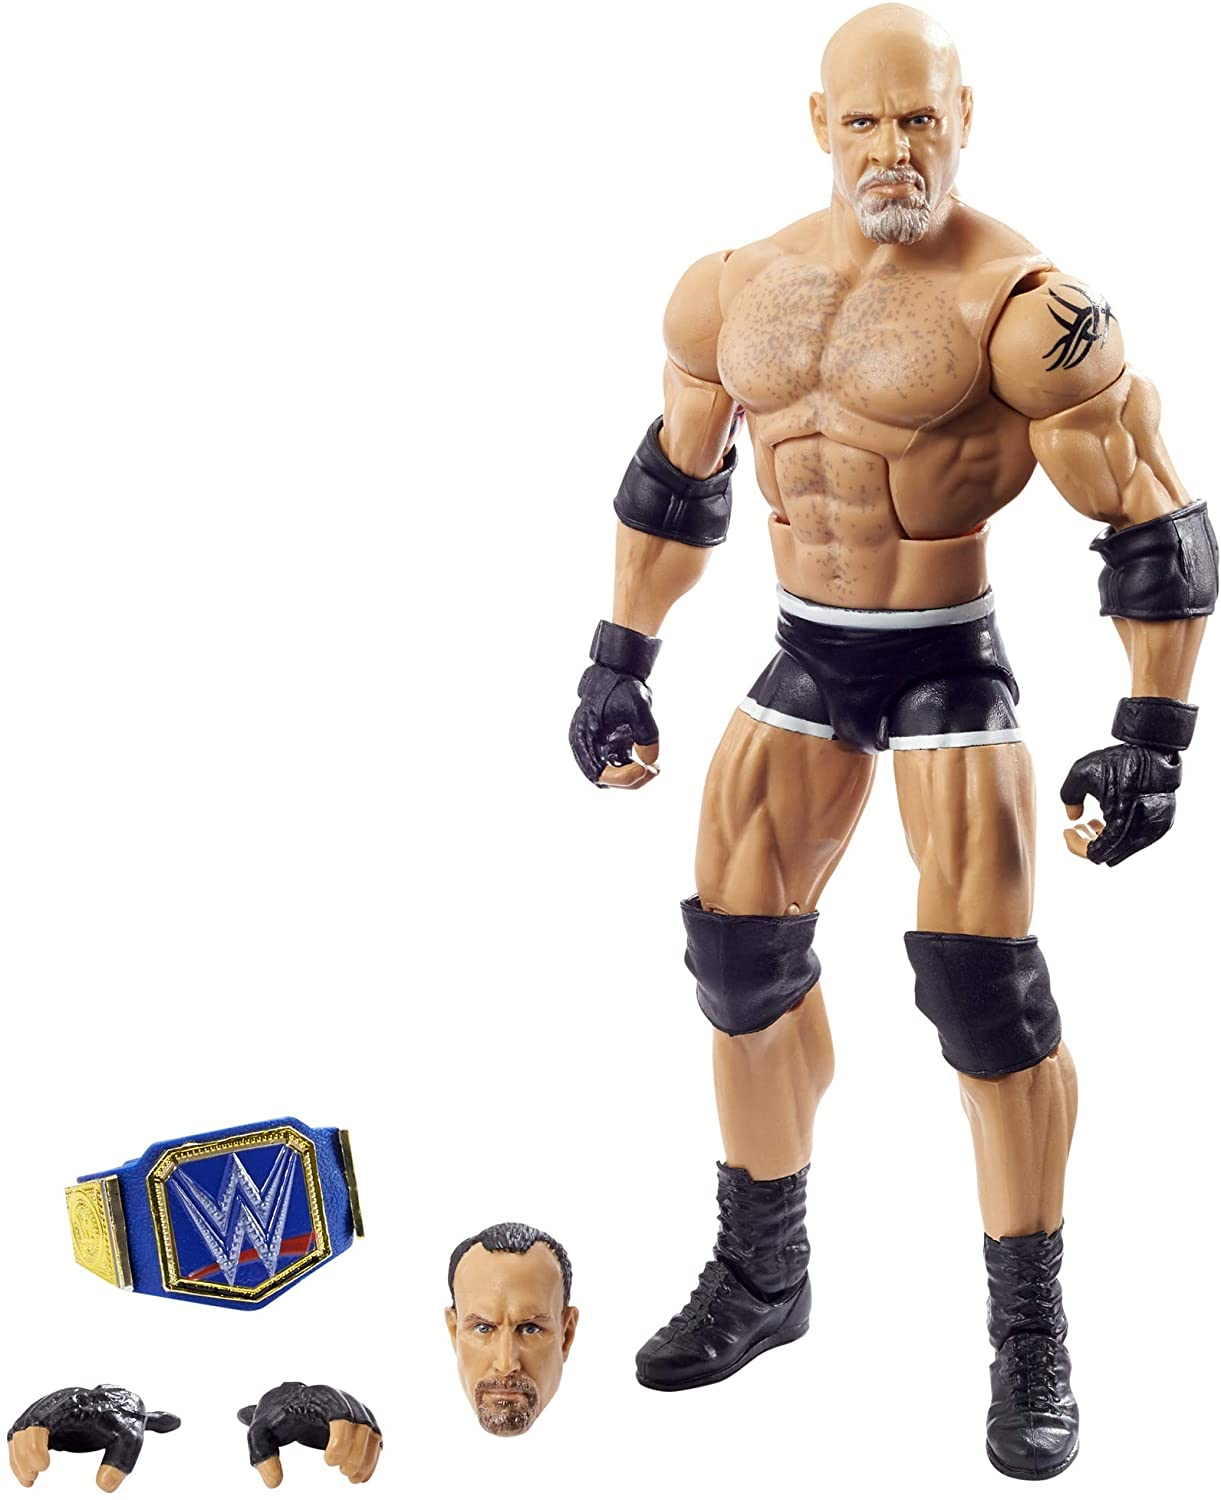 Mattel WWE Elite WrestleMania Paul Ellering & Rocco Build-A-Figure Wave Pre-Orders On Amazon